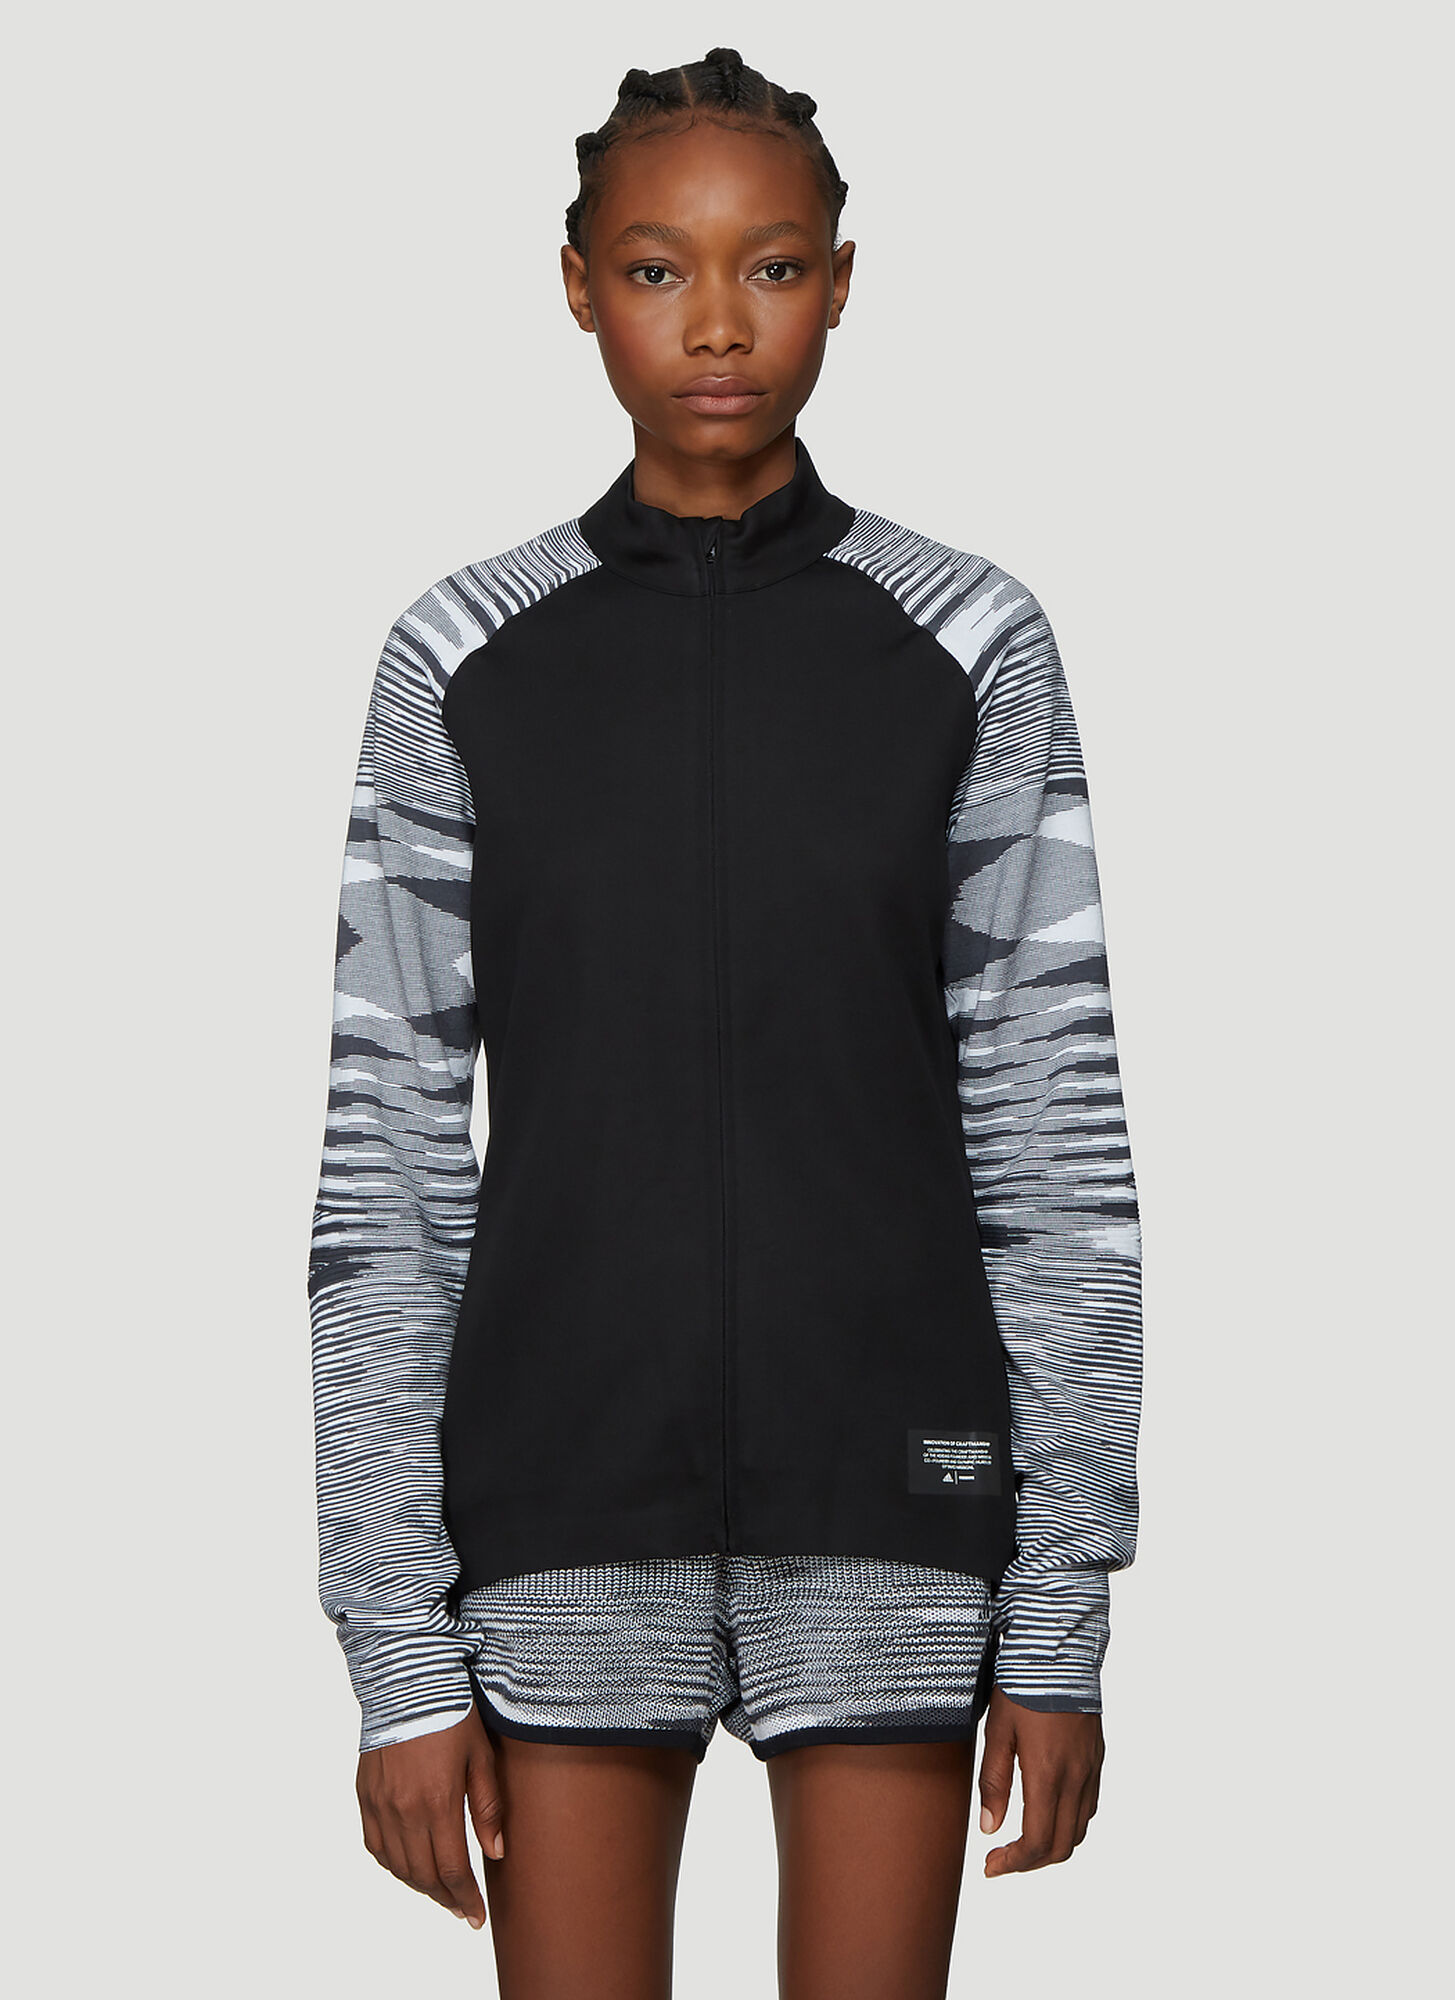 Adidas x Missoni X Missoni PHX Jacket in Black